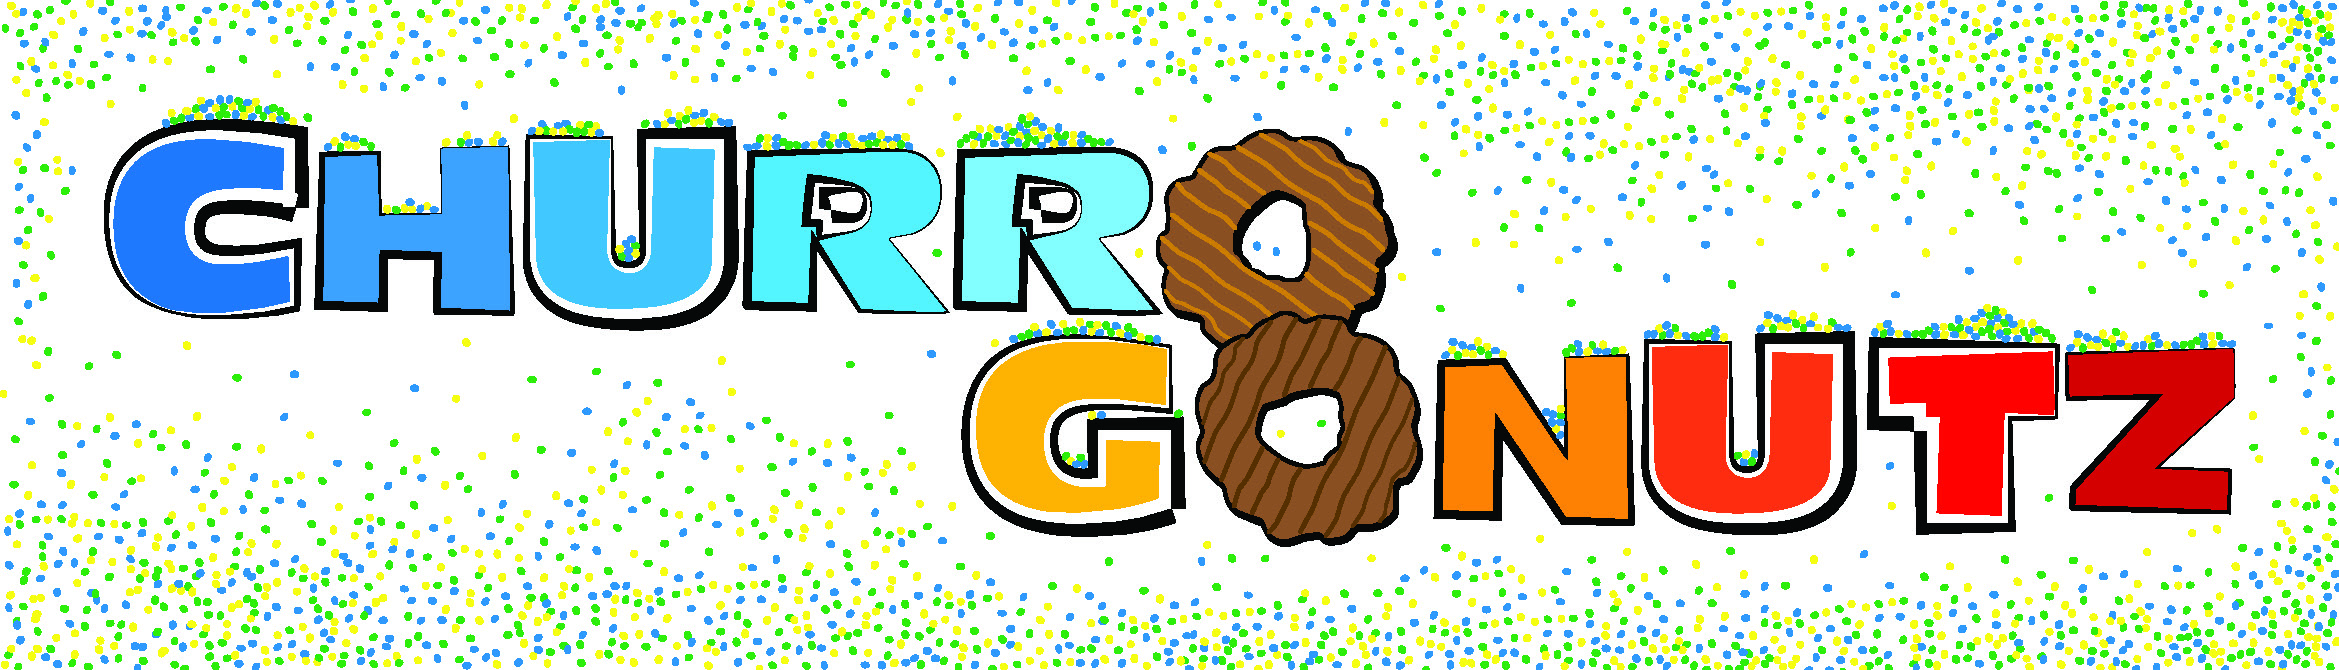 Churro GoNutz logo w color.jpg